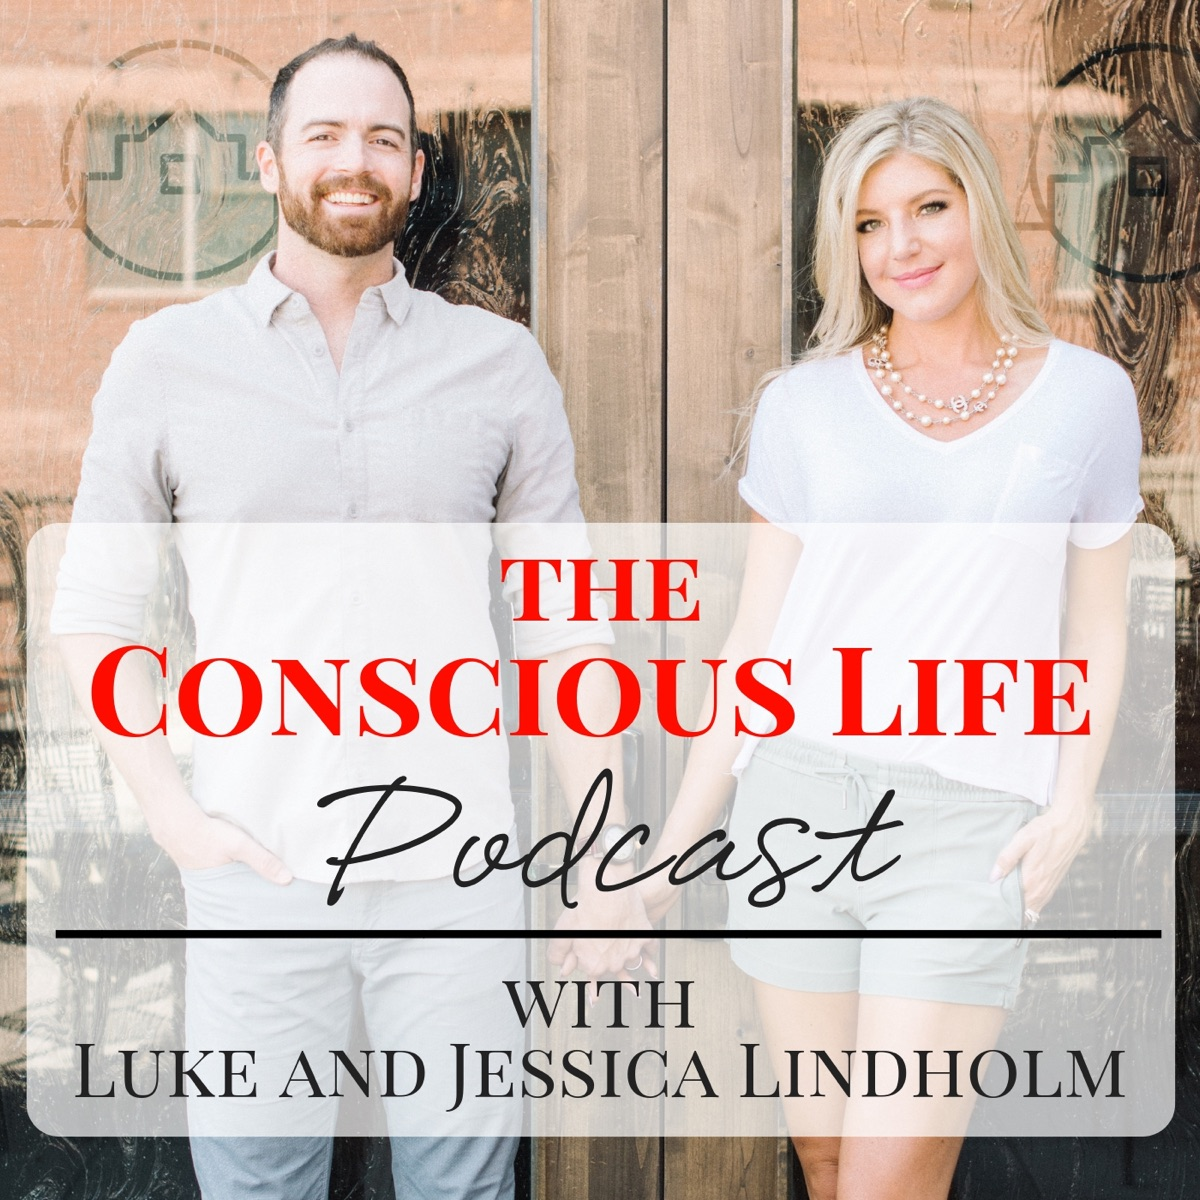 The Conscious Life Podcast